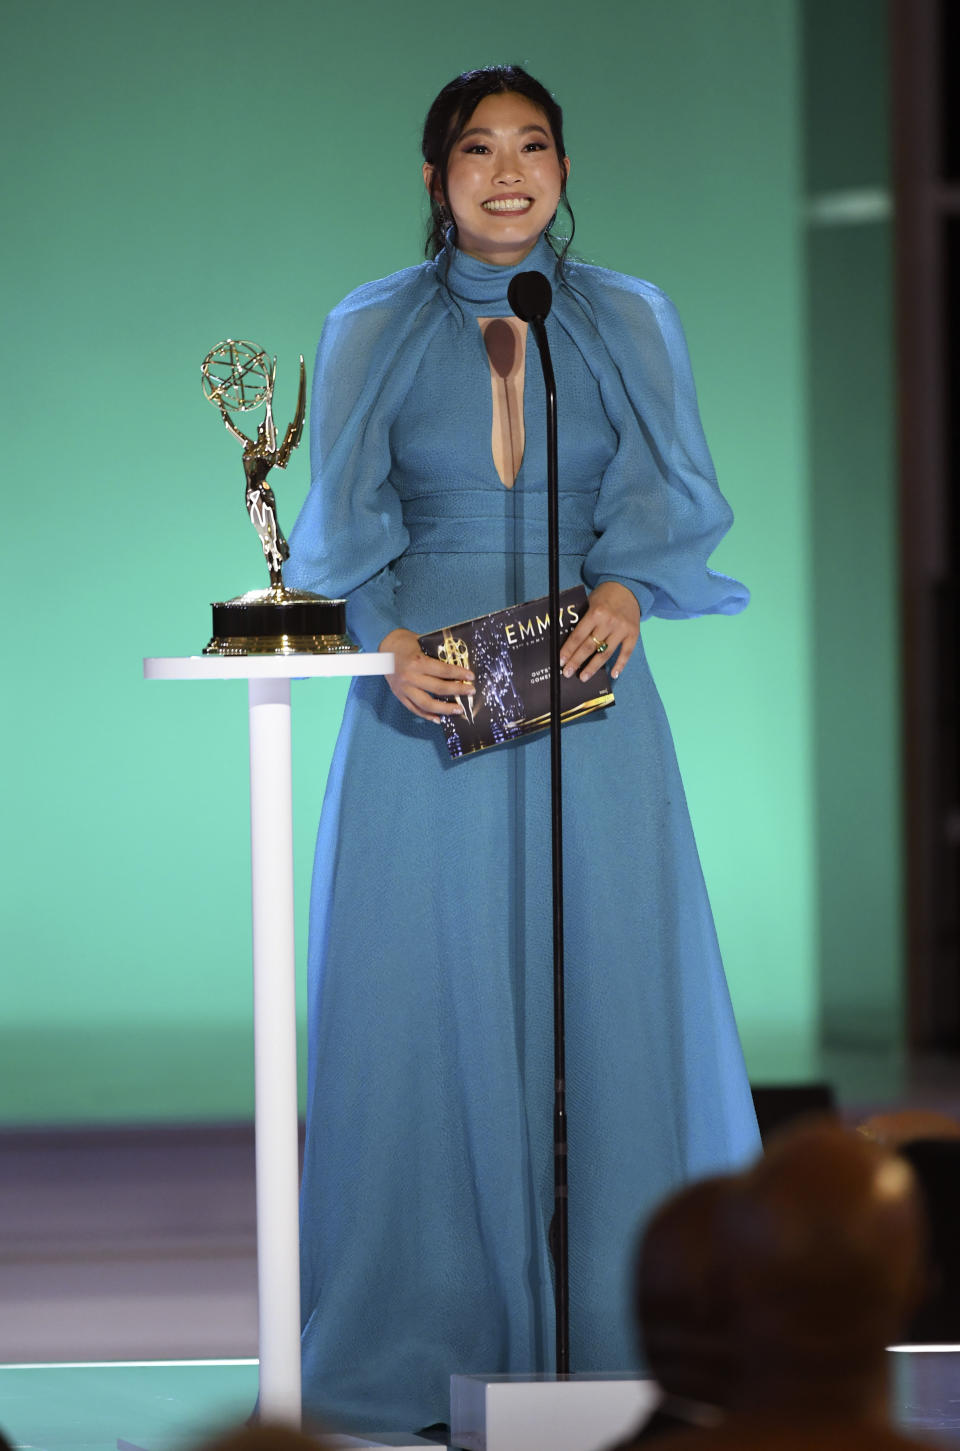 <p>(Photo by Phil McCarten/Invision for the Television Academy/AP Images)</p>